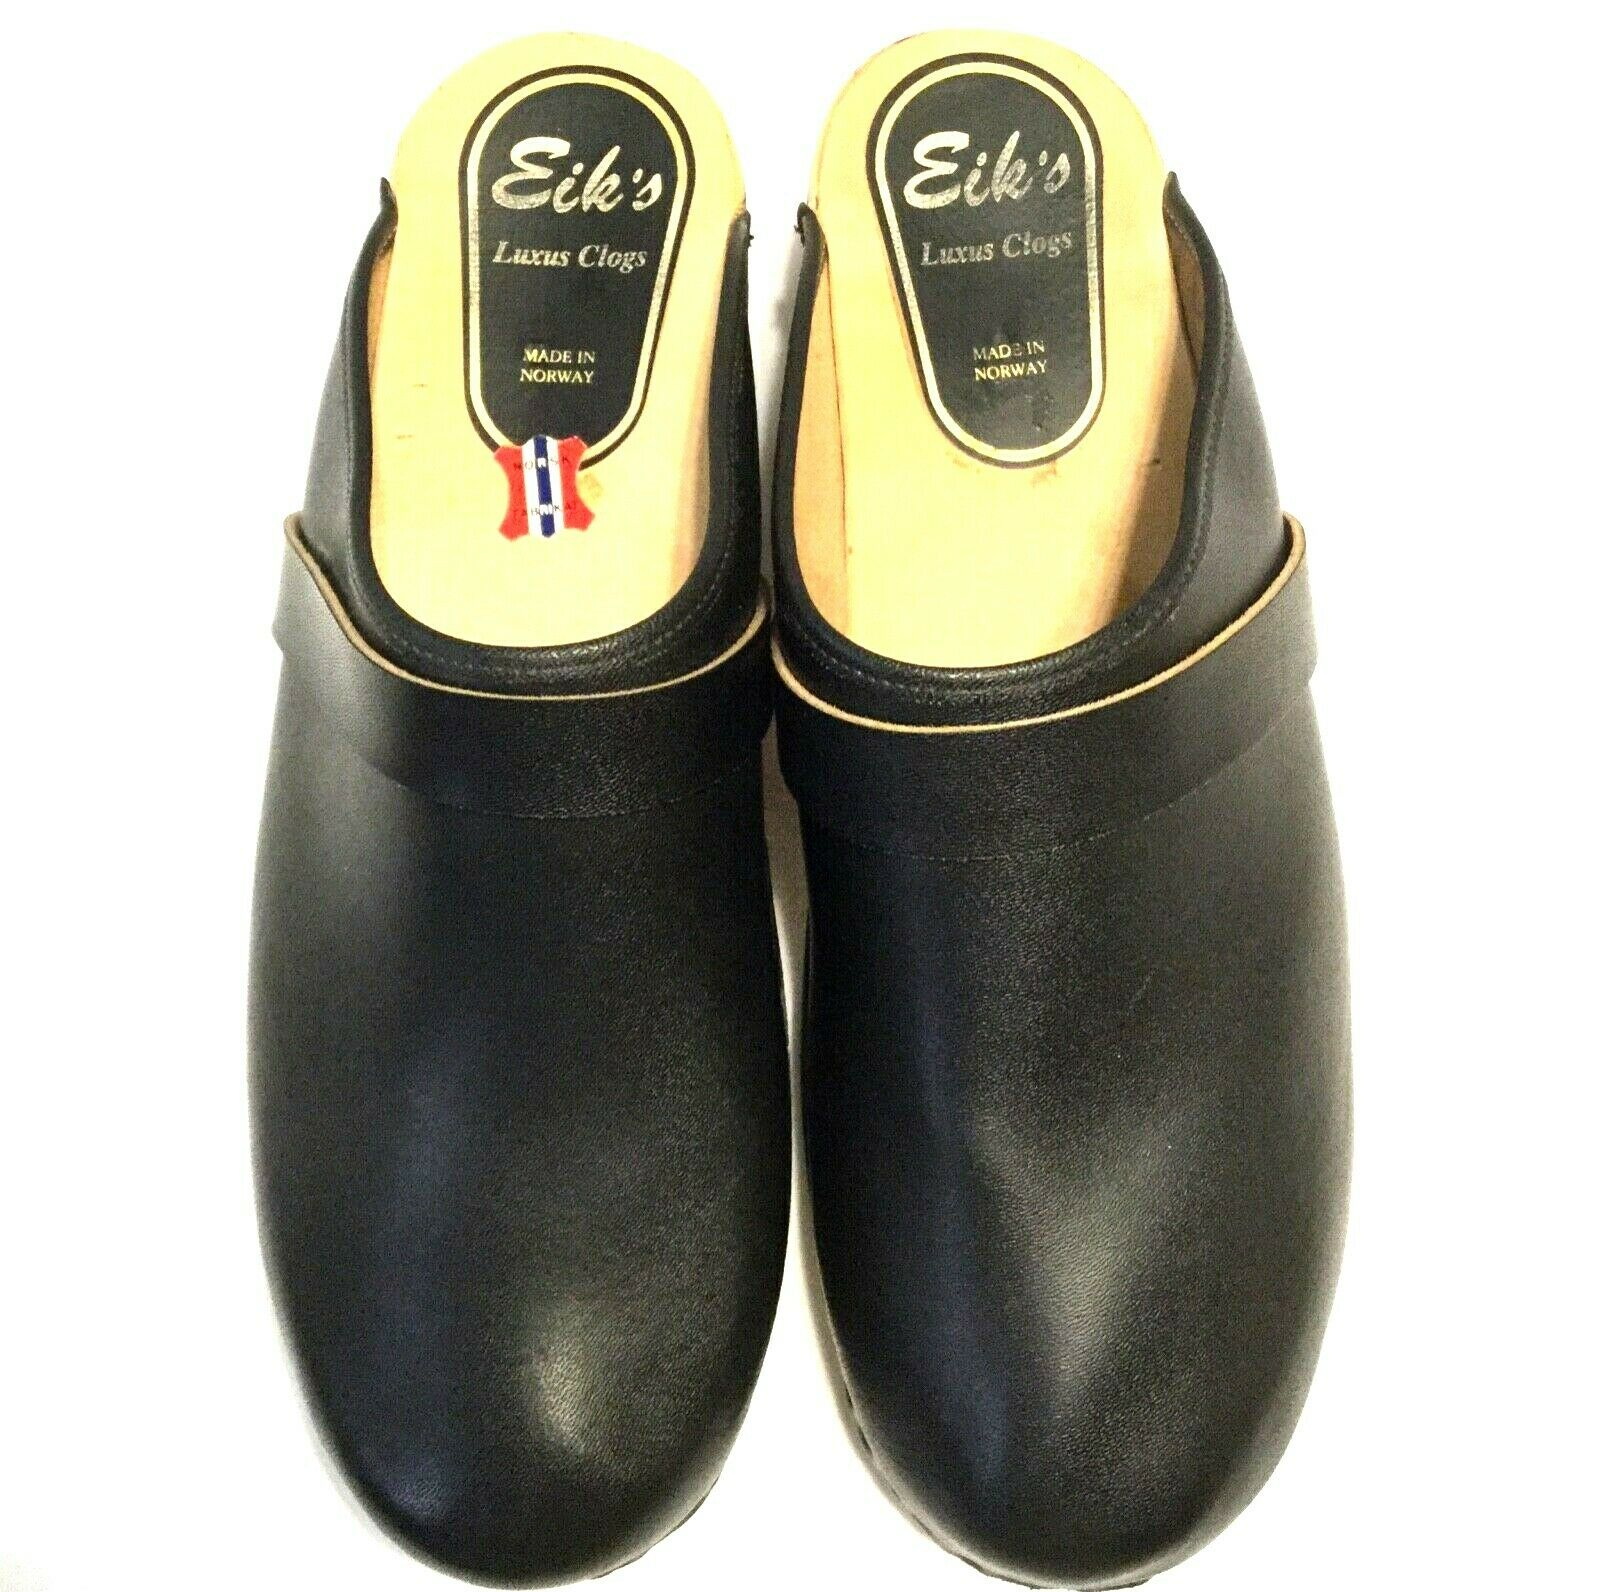 MEN'S SIZE 10 EIK'S LUXUS CLOGS Black Leather Solid Wood Base Made in Norway